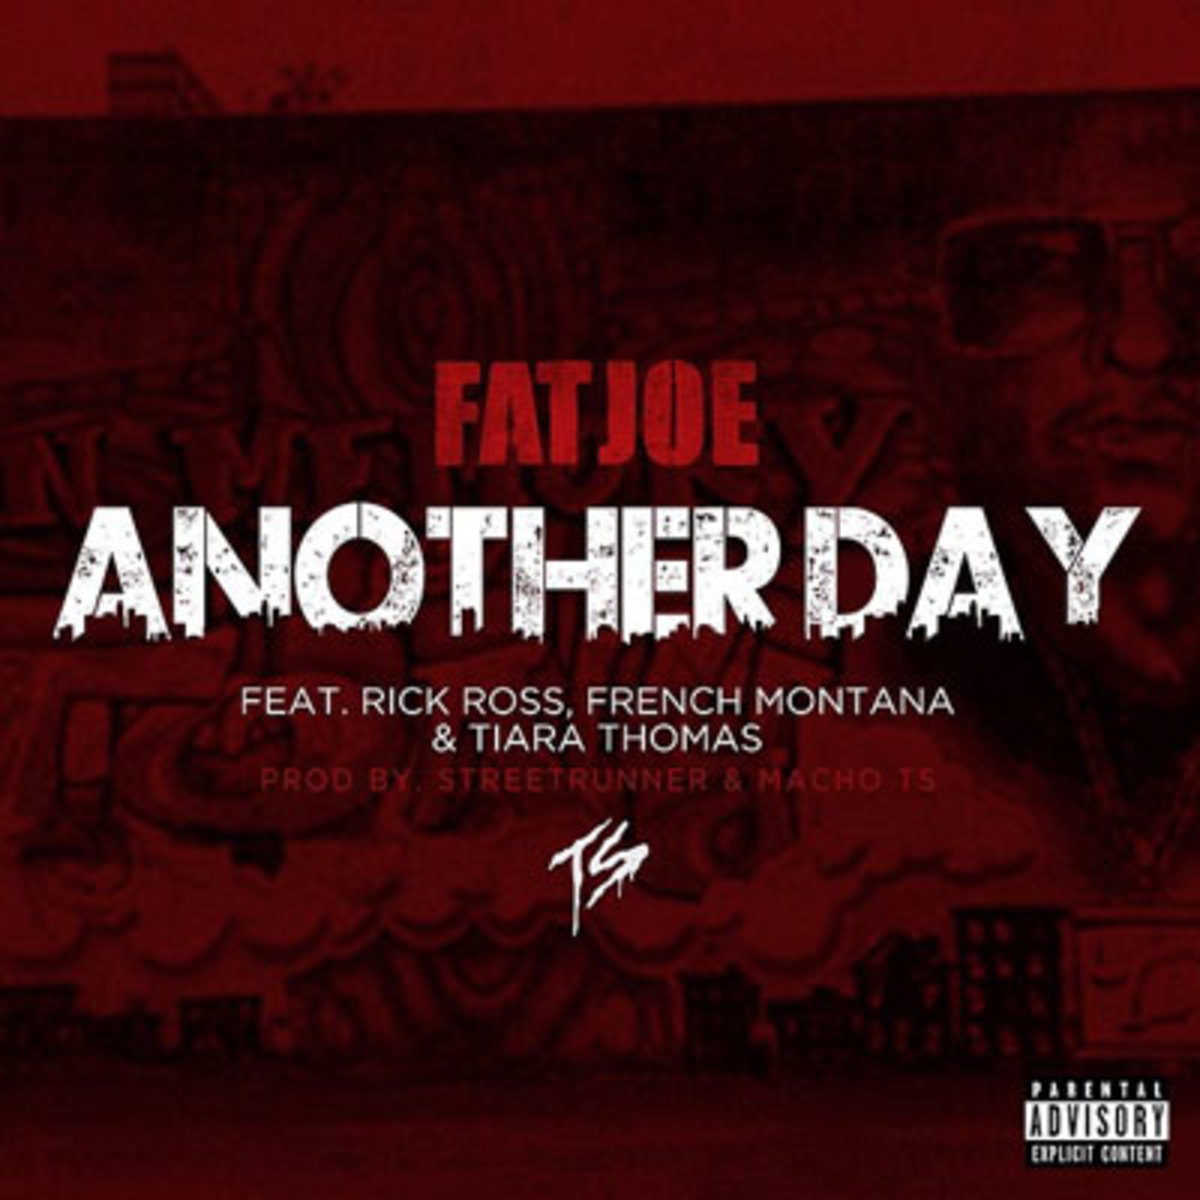 fatjoe-anotherday.jpg